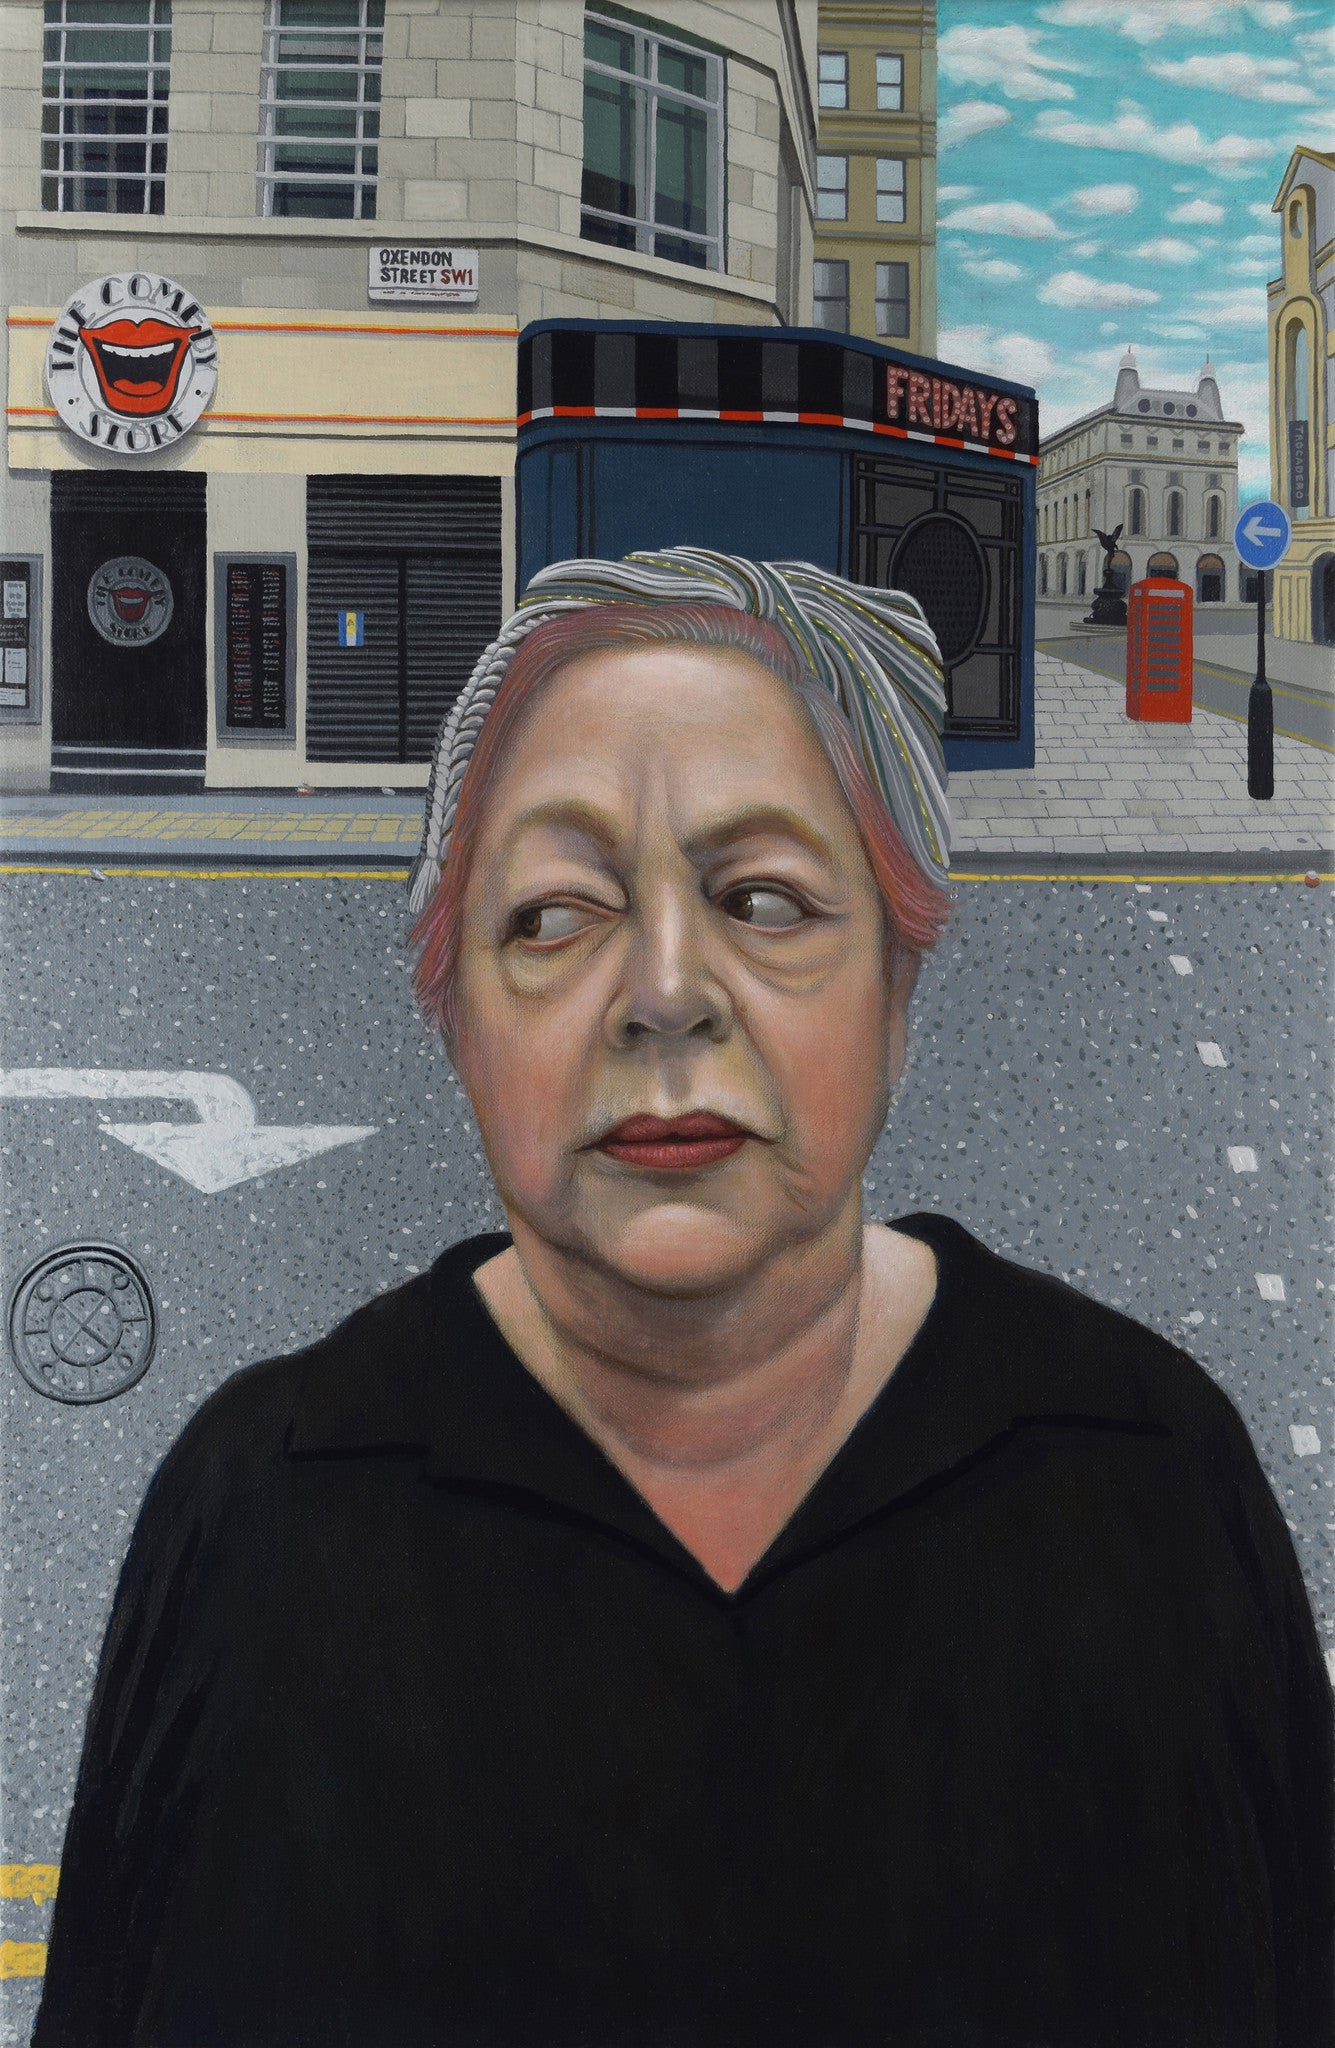 Jo Brand and The Comedy Club, comedienne (unframed)